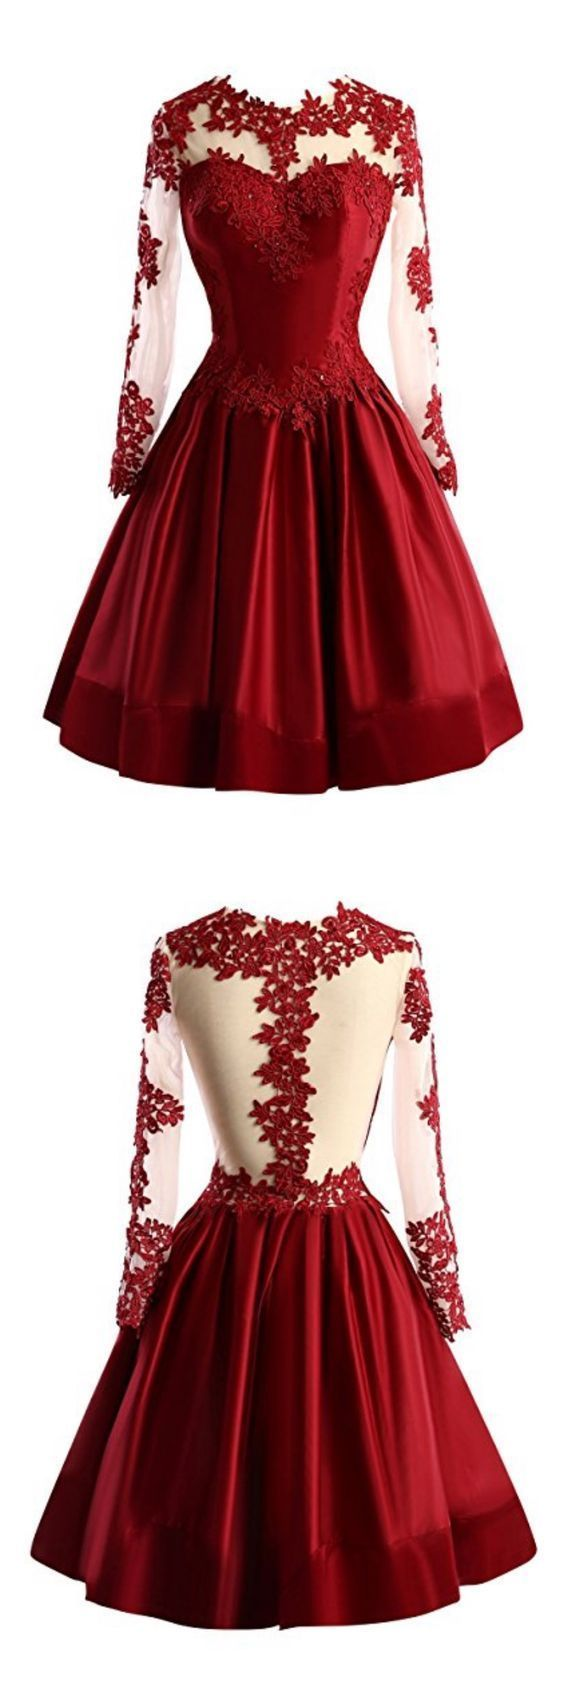 best prom images on pinterest chiffon dresses prom dresses and